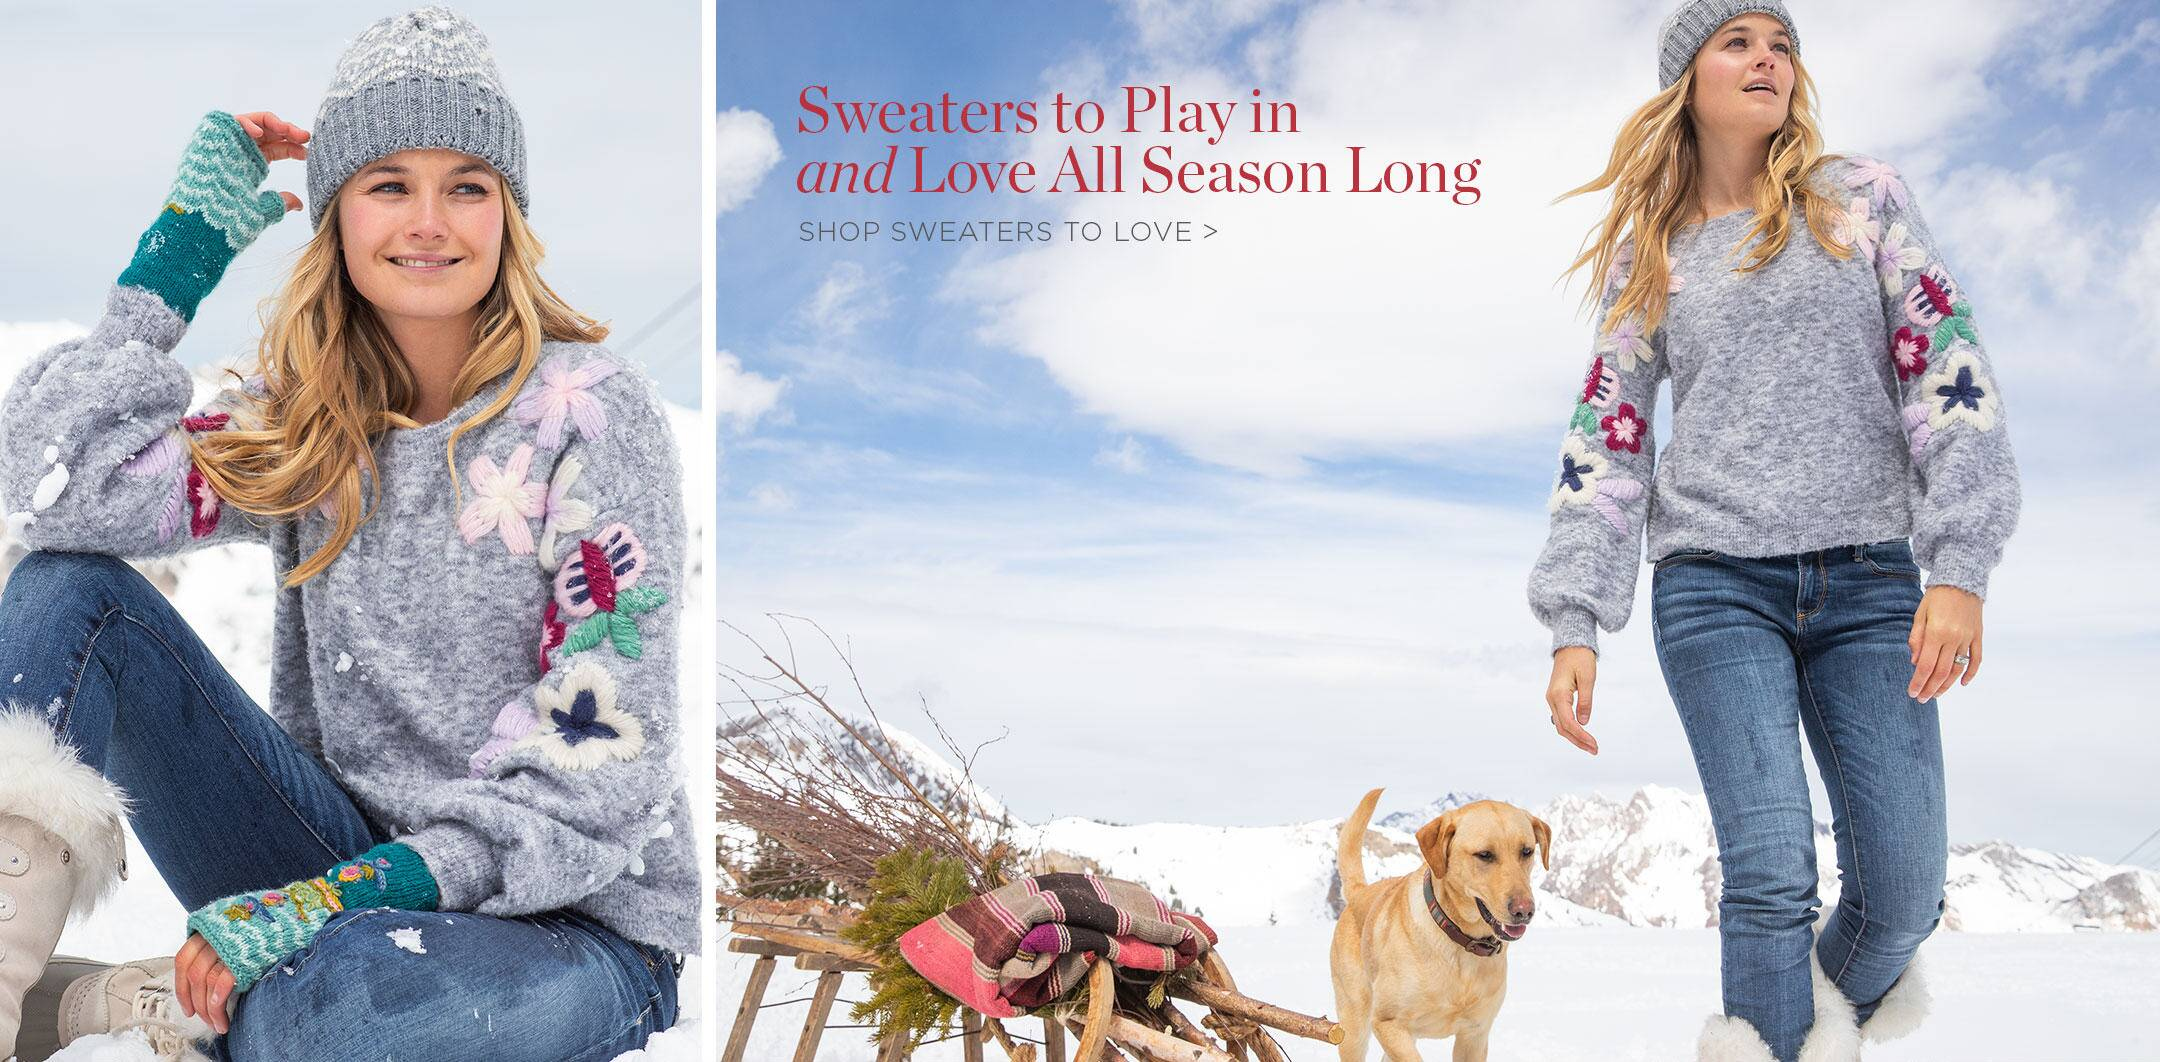 Shop Sweaters to Love